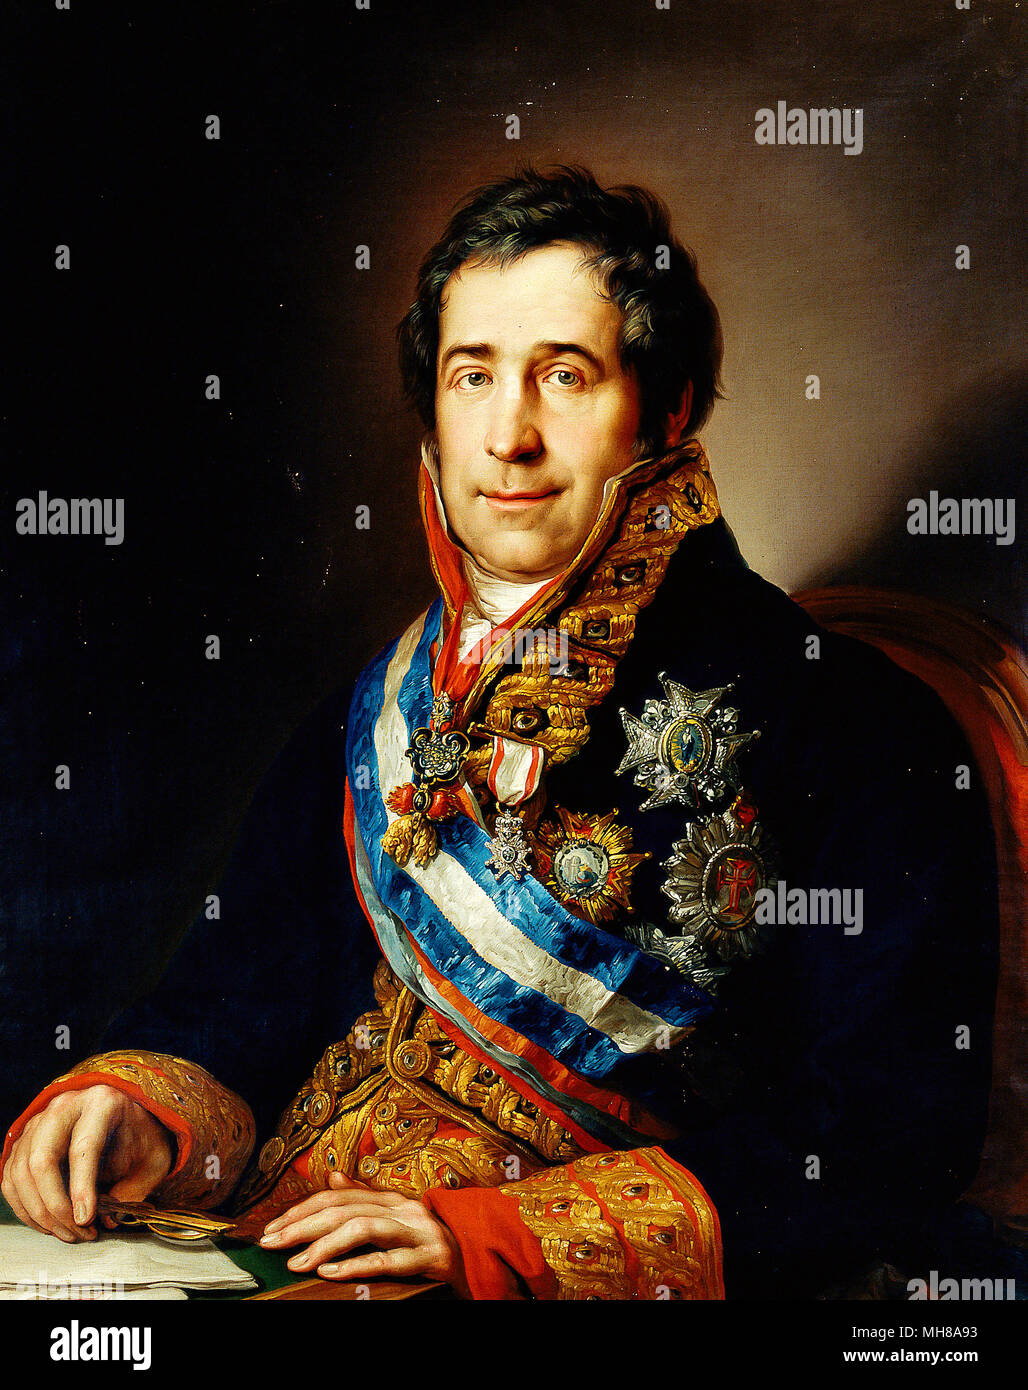 Francisco Tadeo Calomarde y Arría, 1st Duke of Santa Isabel (1773 – 1842) Spanish statesman and Prime Minister of Spain - Stock Image